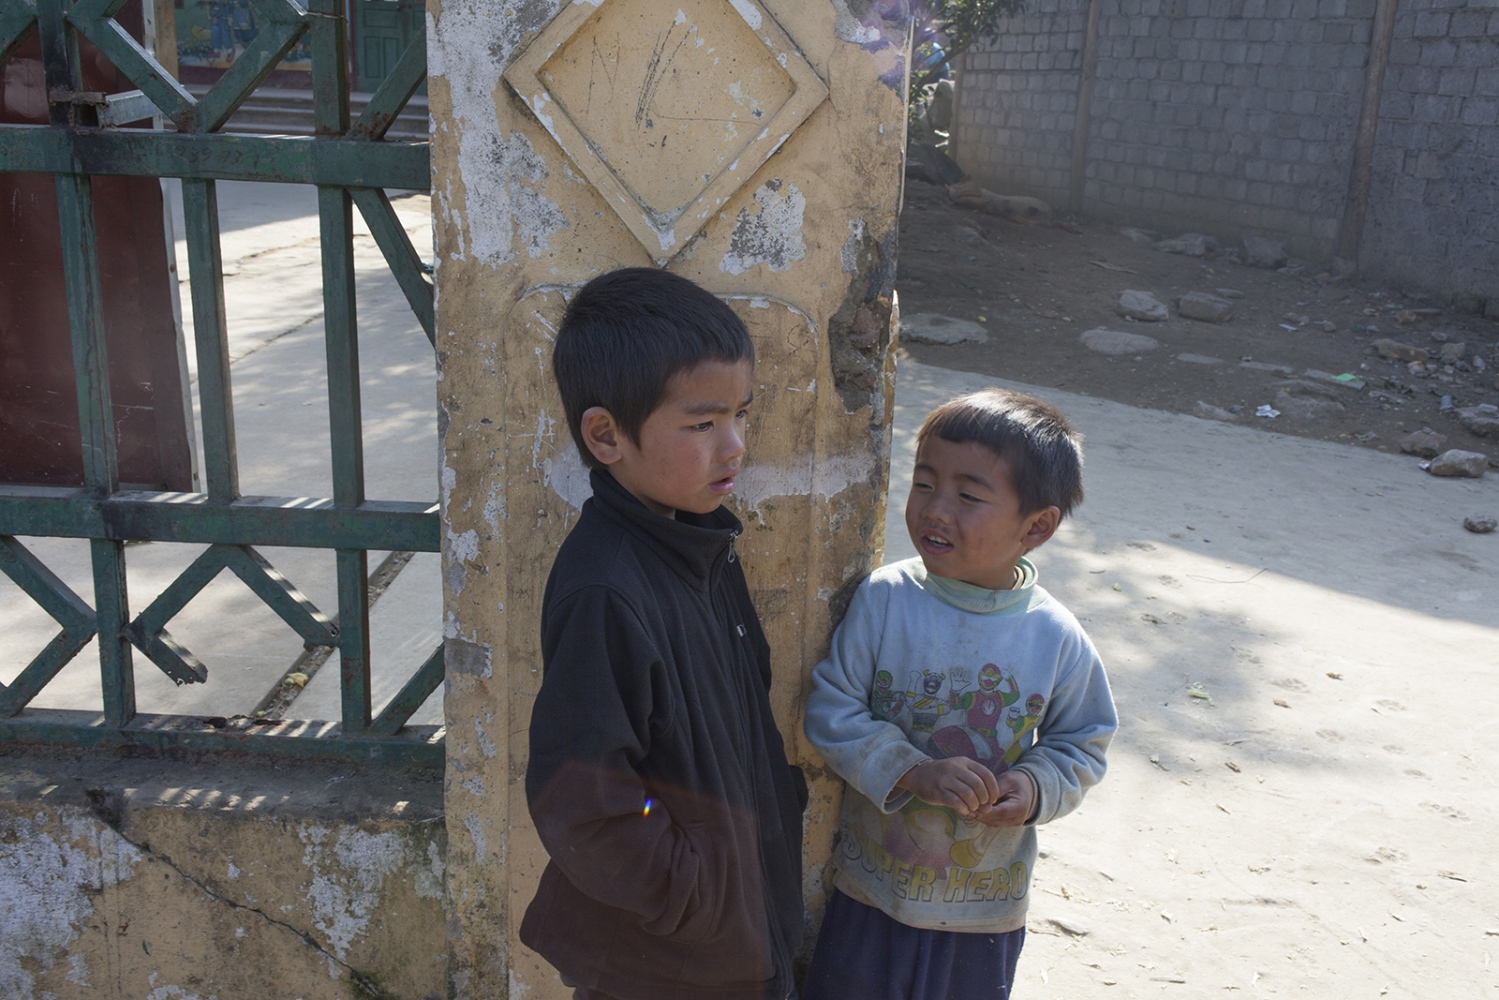 Kids debating important matters in the street in a village.